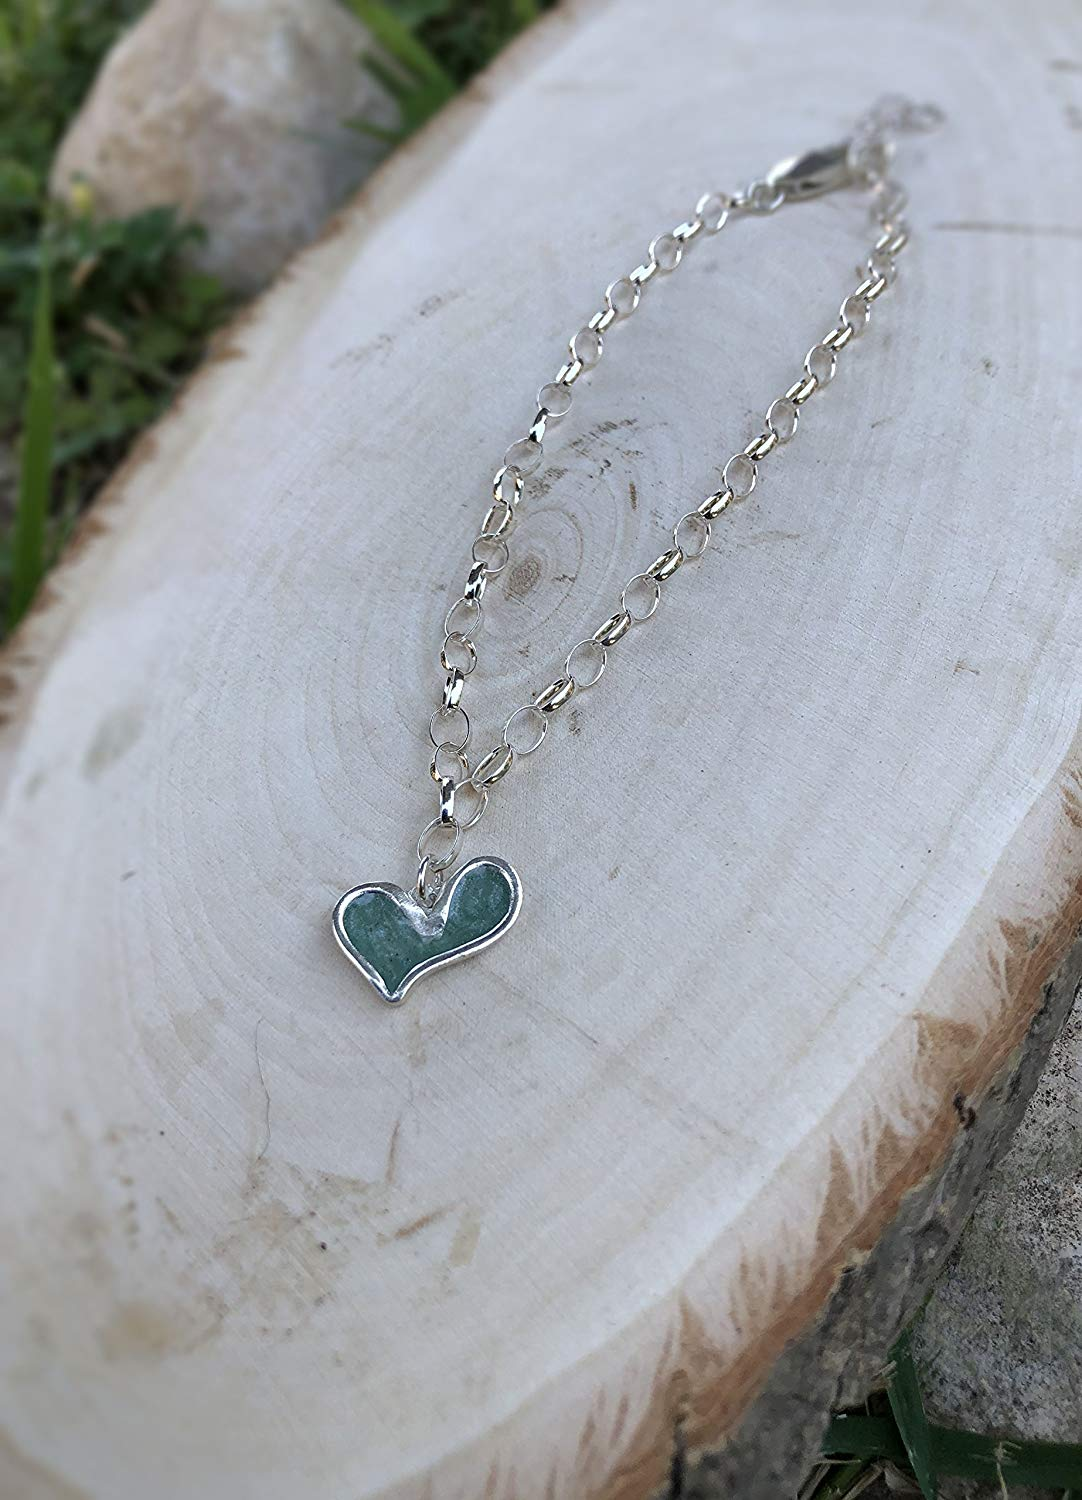 19c32b5acc Get Quotations · Sterling Silver Anklet, Turquoise Cute Heart Charm, Unique  Boho Jewelry